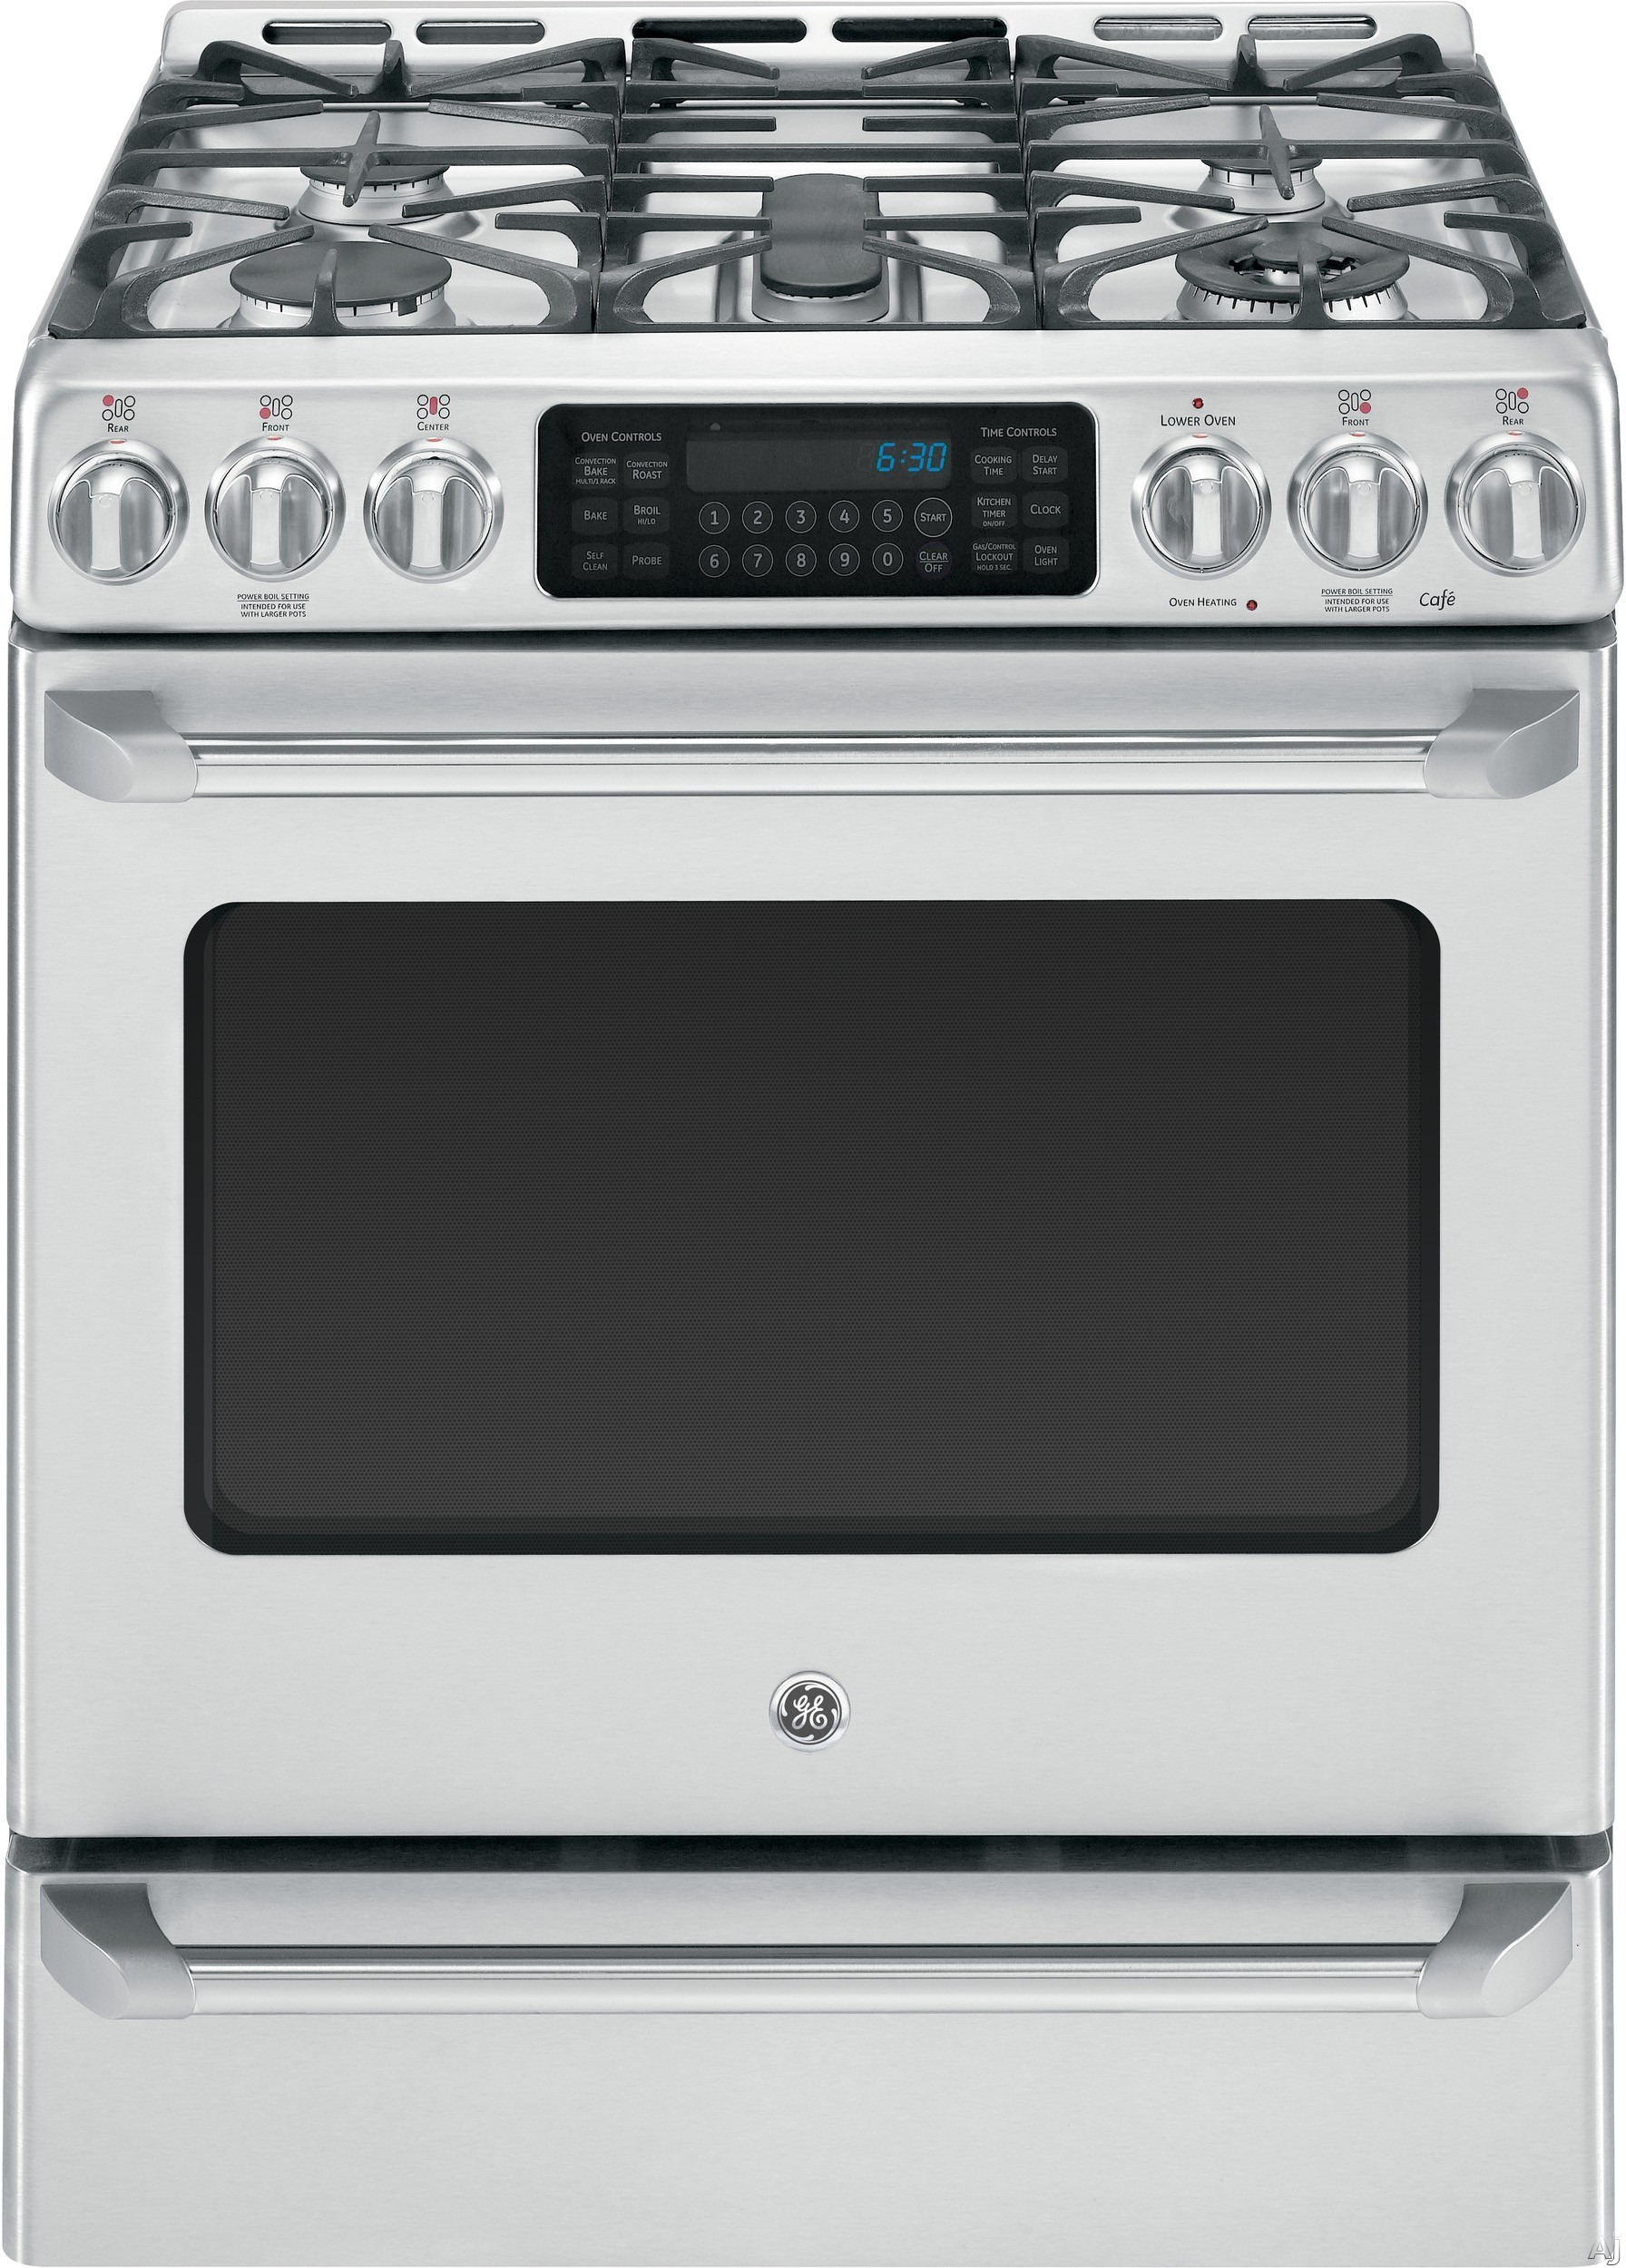 "GE Cafe Series CGS985SETSS 30"" Slide-in Gas Range with 5 Sealed Burners, 5.4 cu. ft. Convection Oven, 20,000 BTU Tri-Ring Burner, Non-Stick Griddle, Temperature Probe, Baking Drawer and Self-Clean Mode"